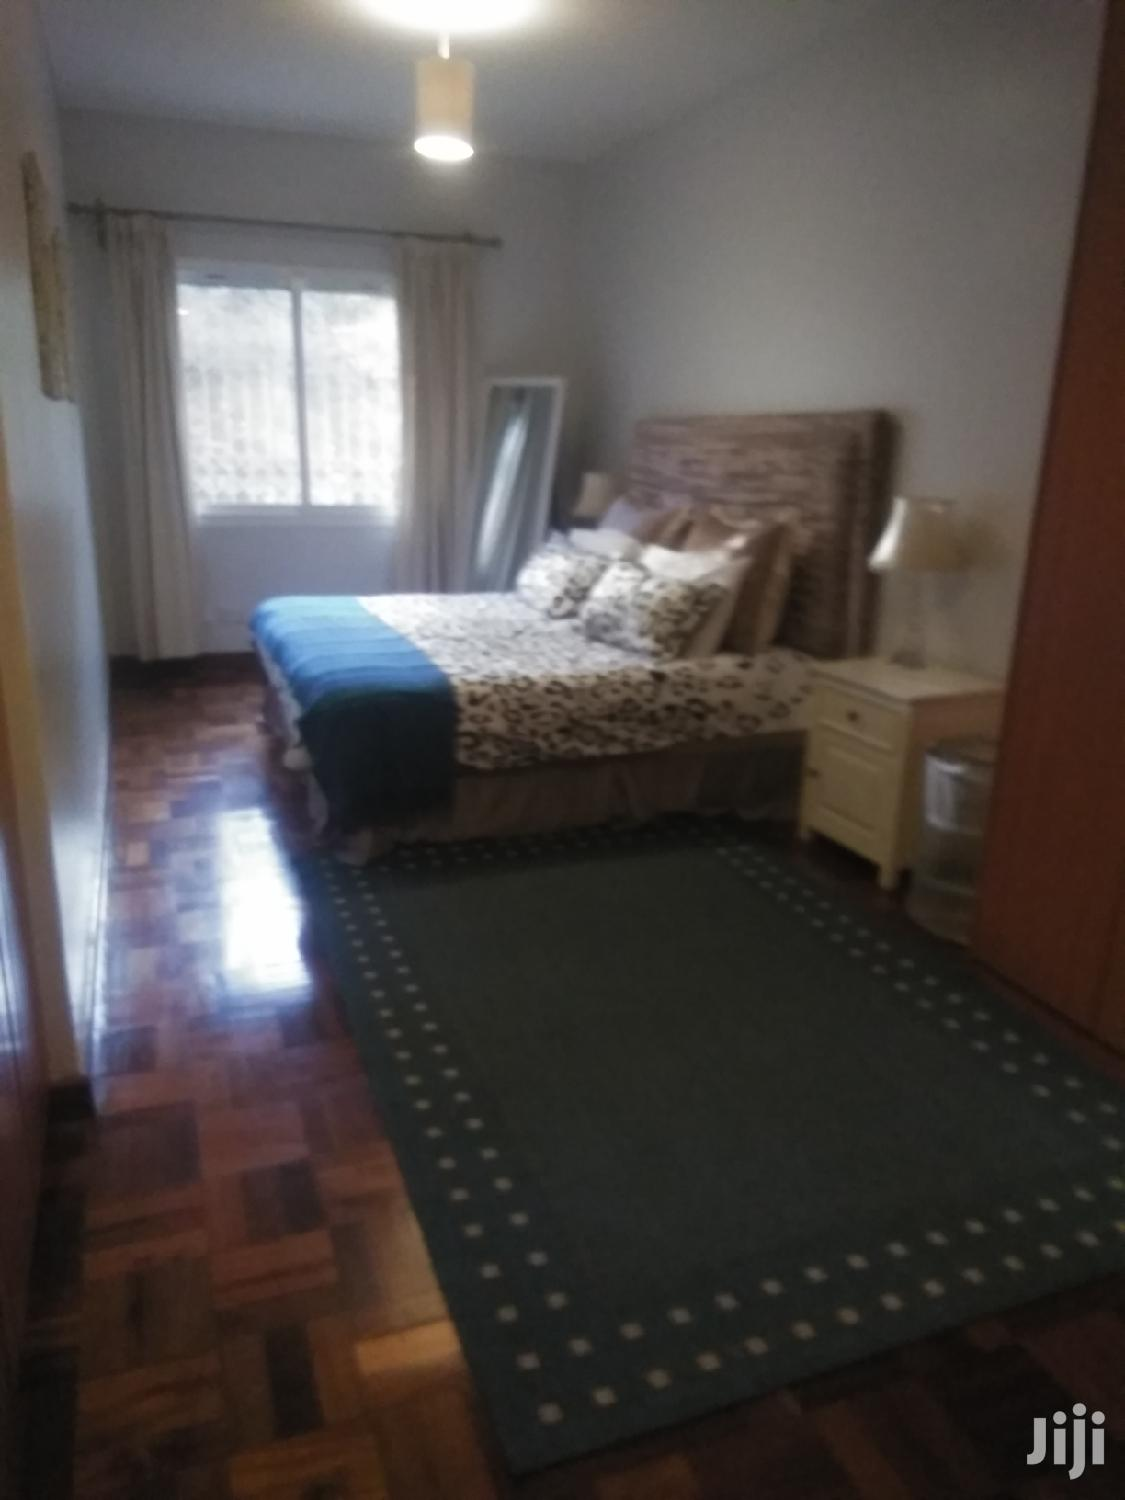 Archive: Furnished Apartment For Rent